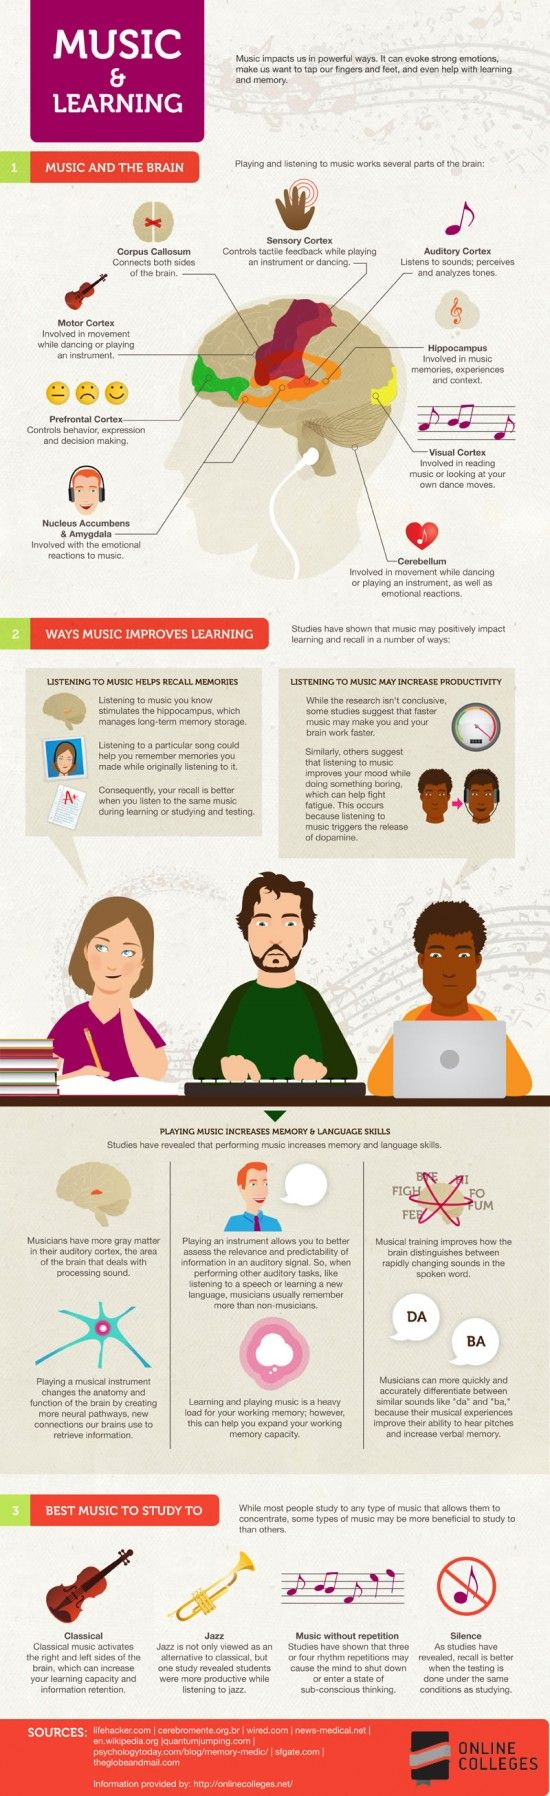 Musics Effect on Learning [infographic]